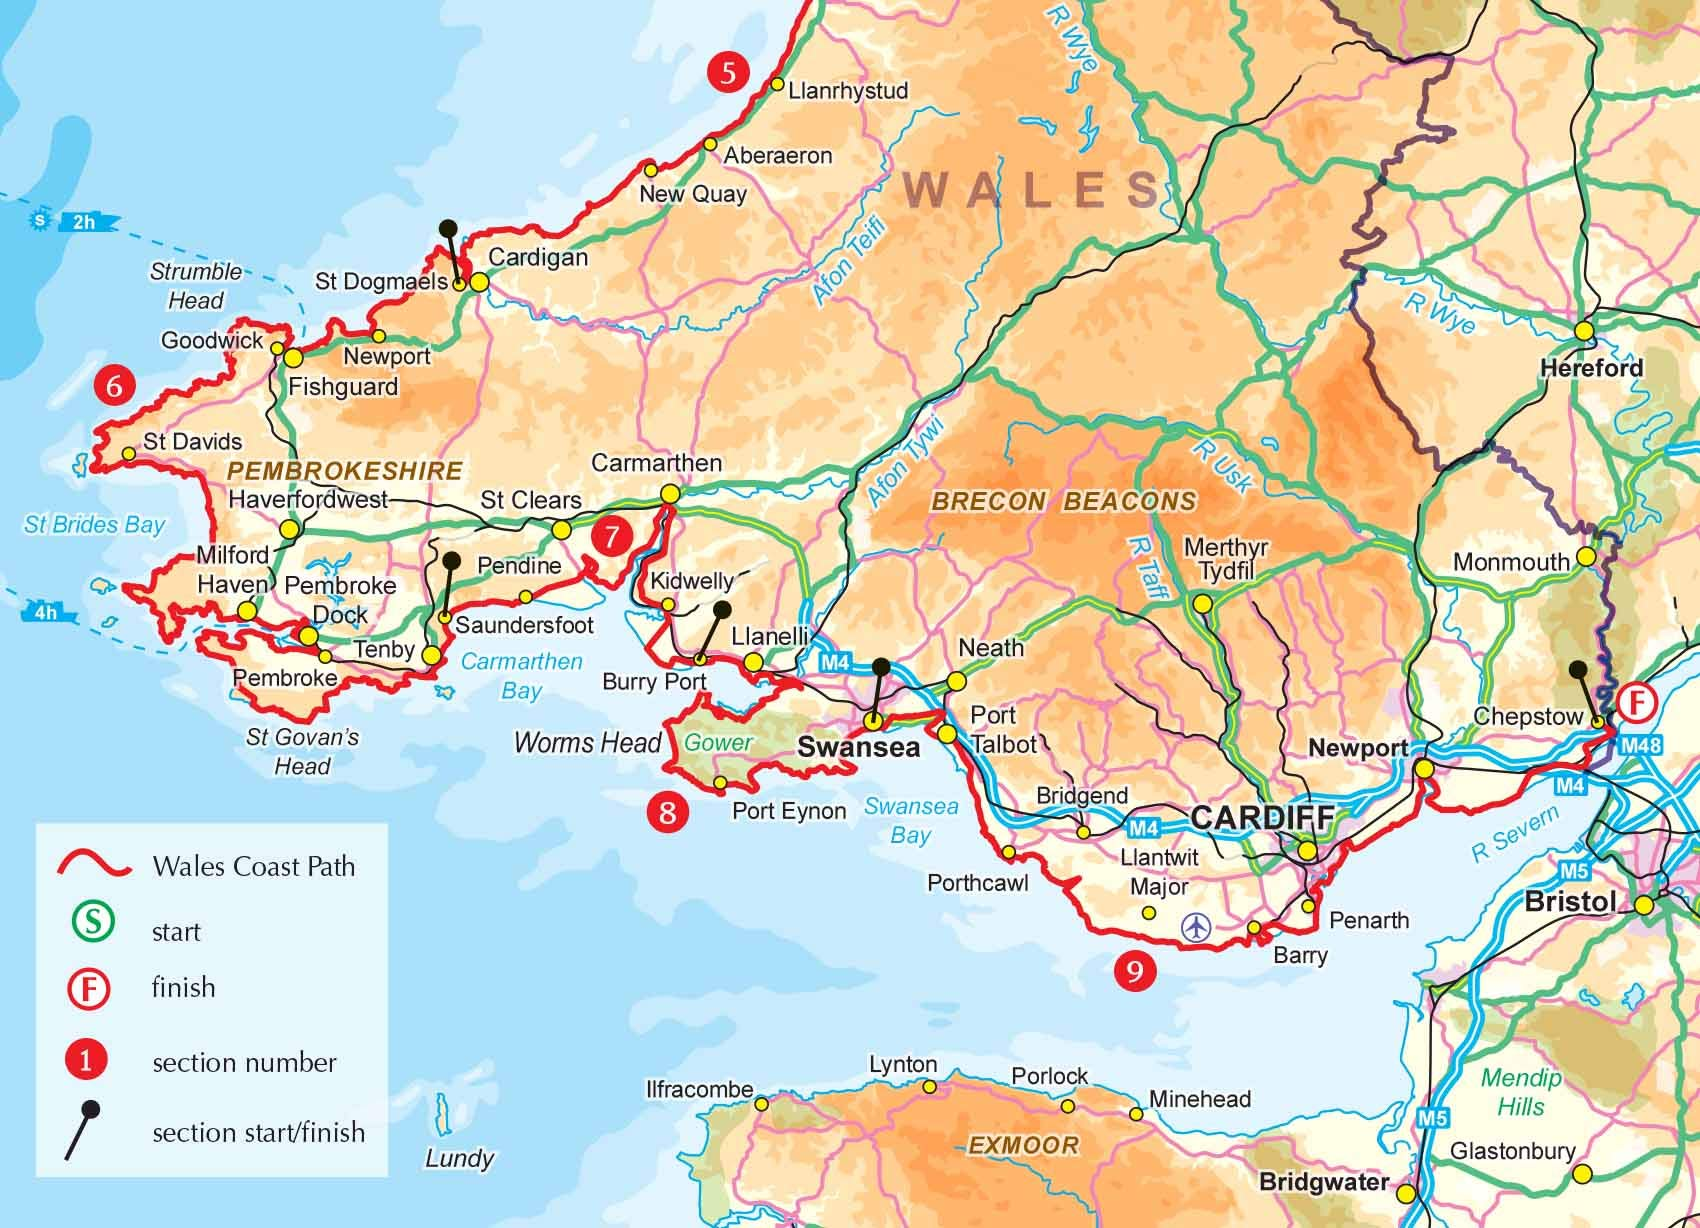 Walking the Wales Coast Path and Maps